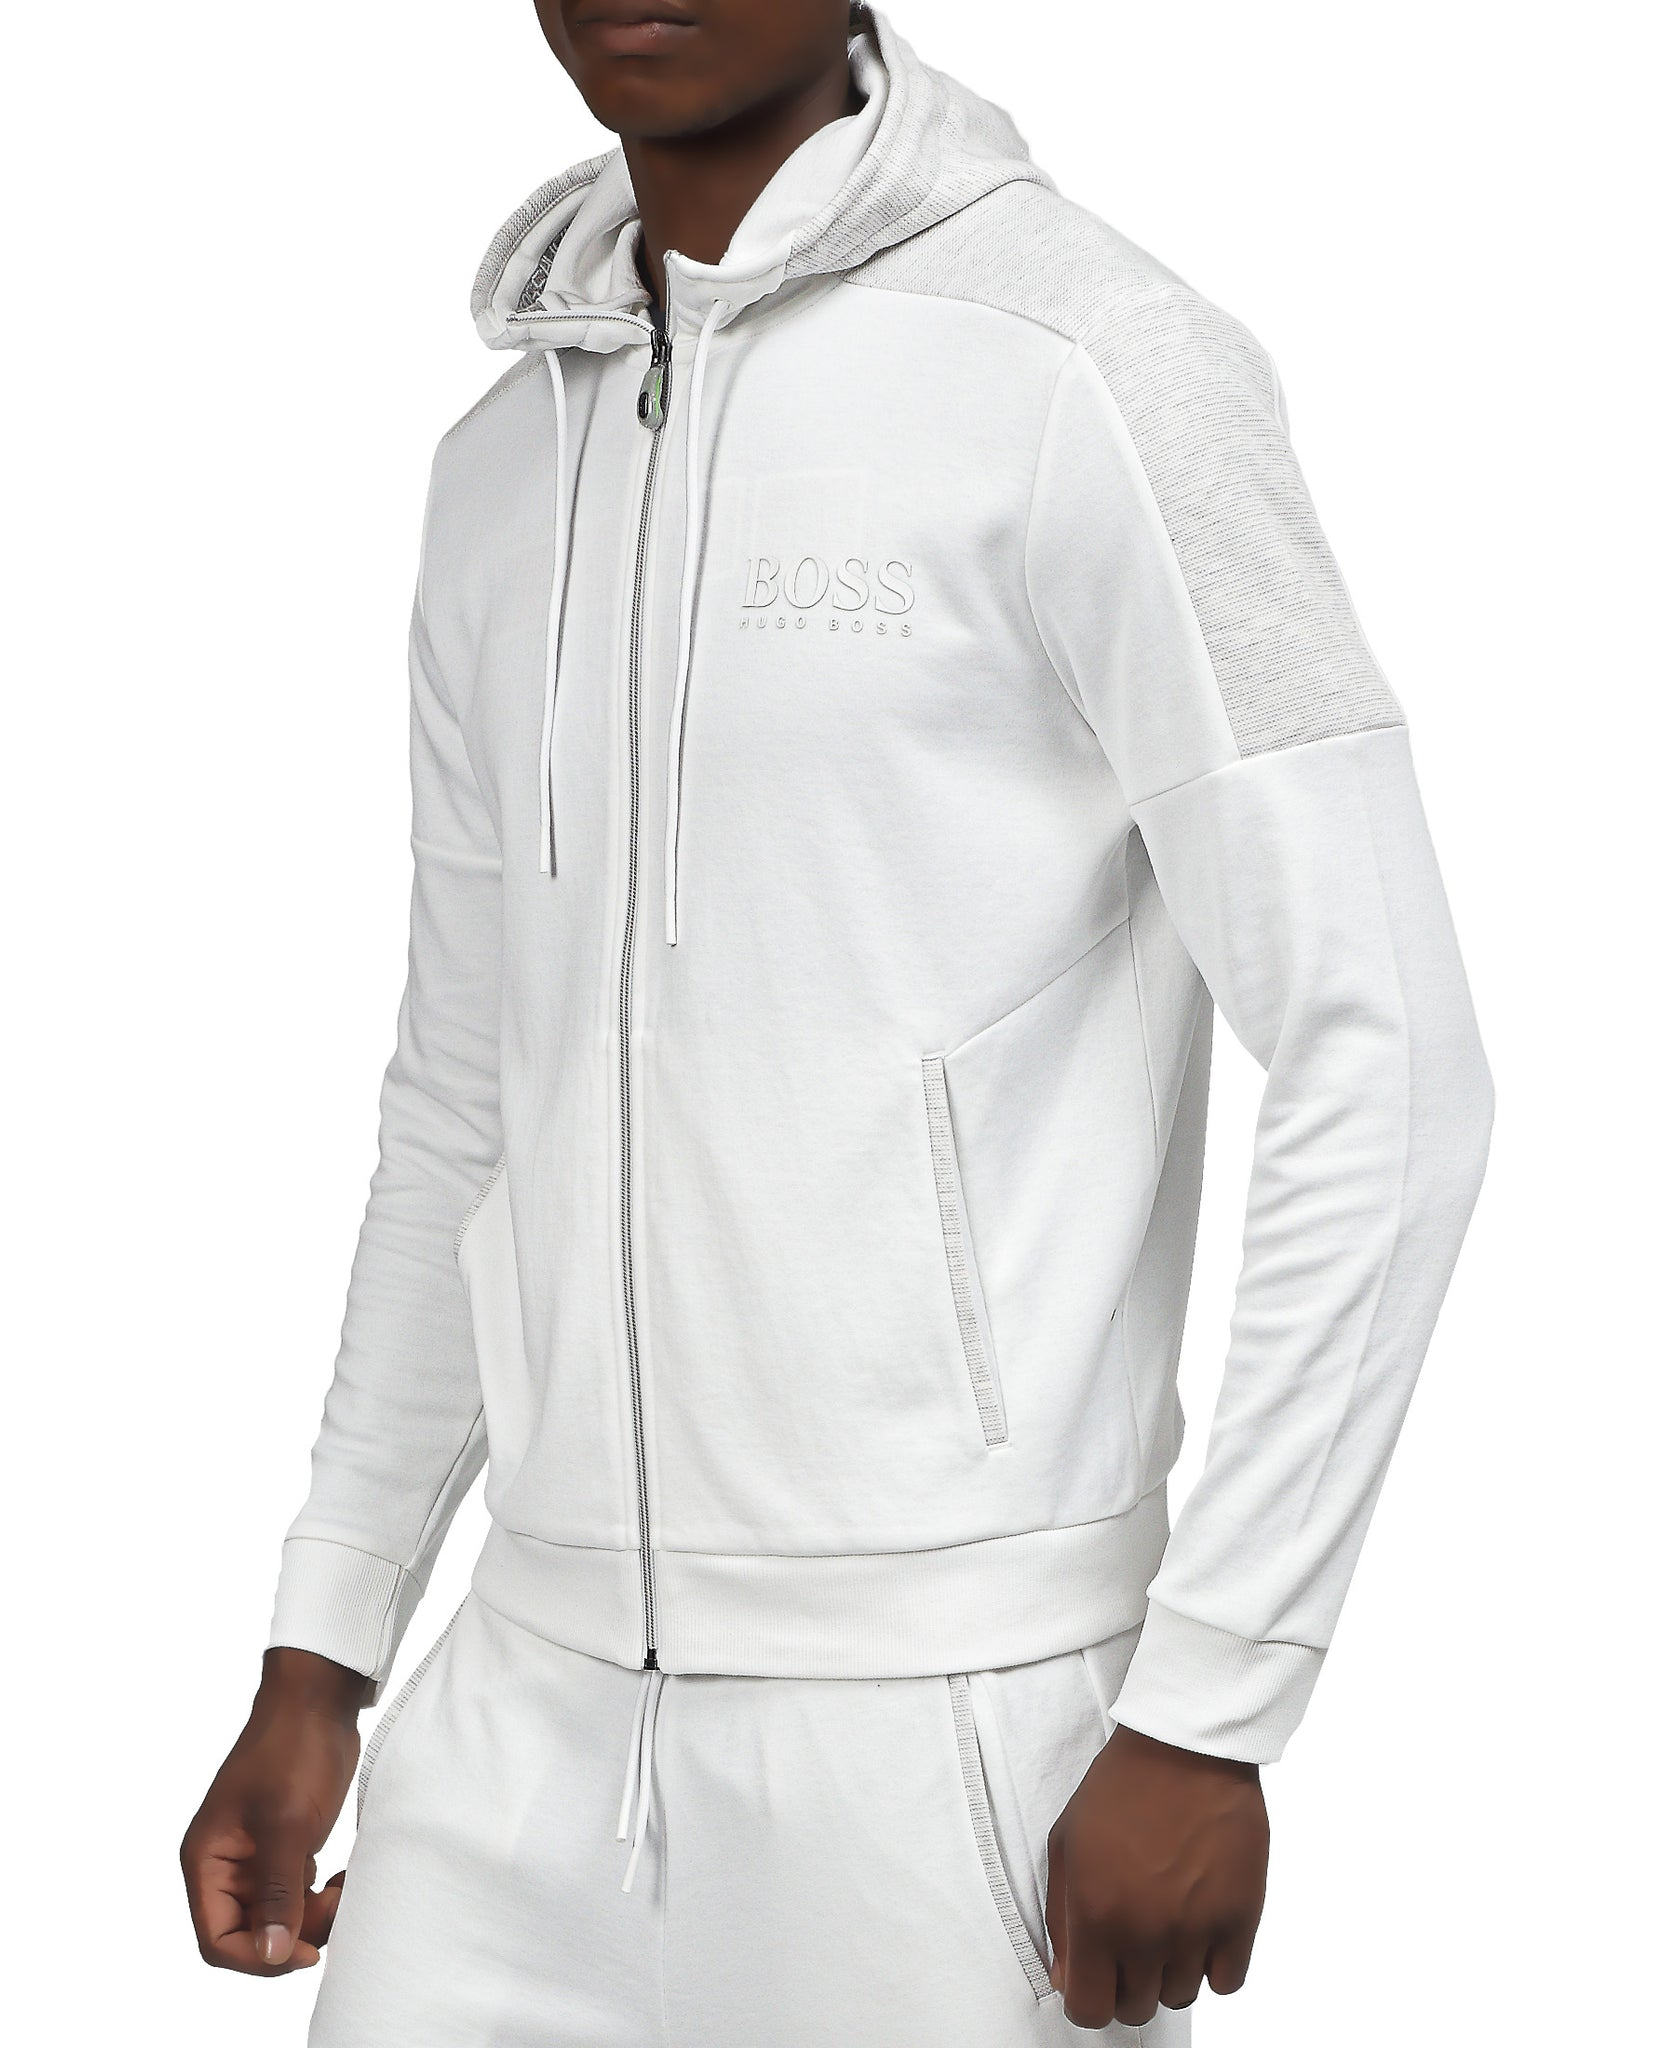 Regular Fit Hugo Boss Sweatshirt - White